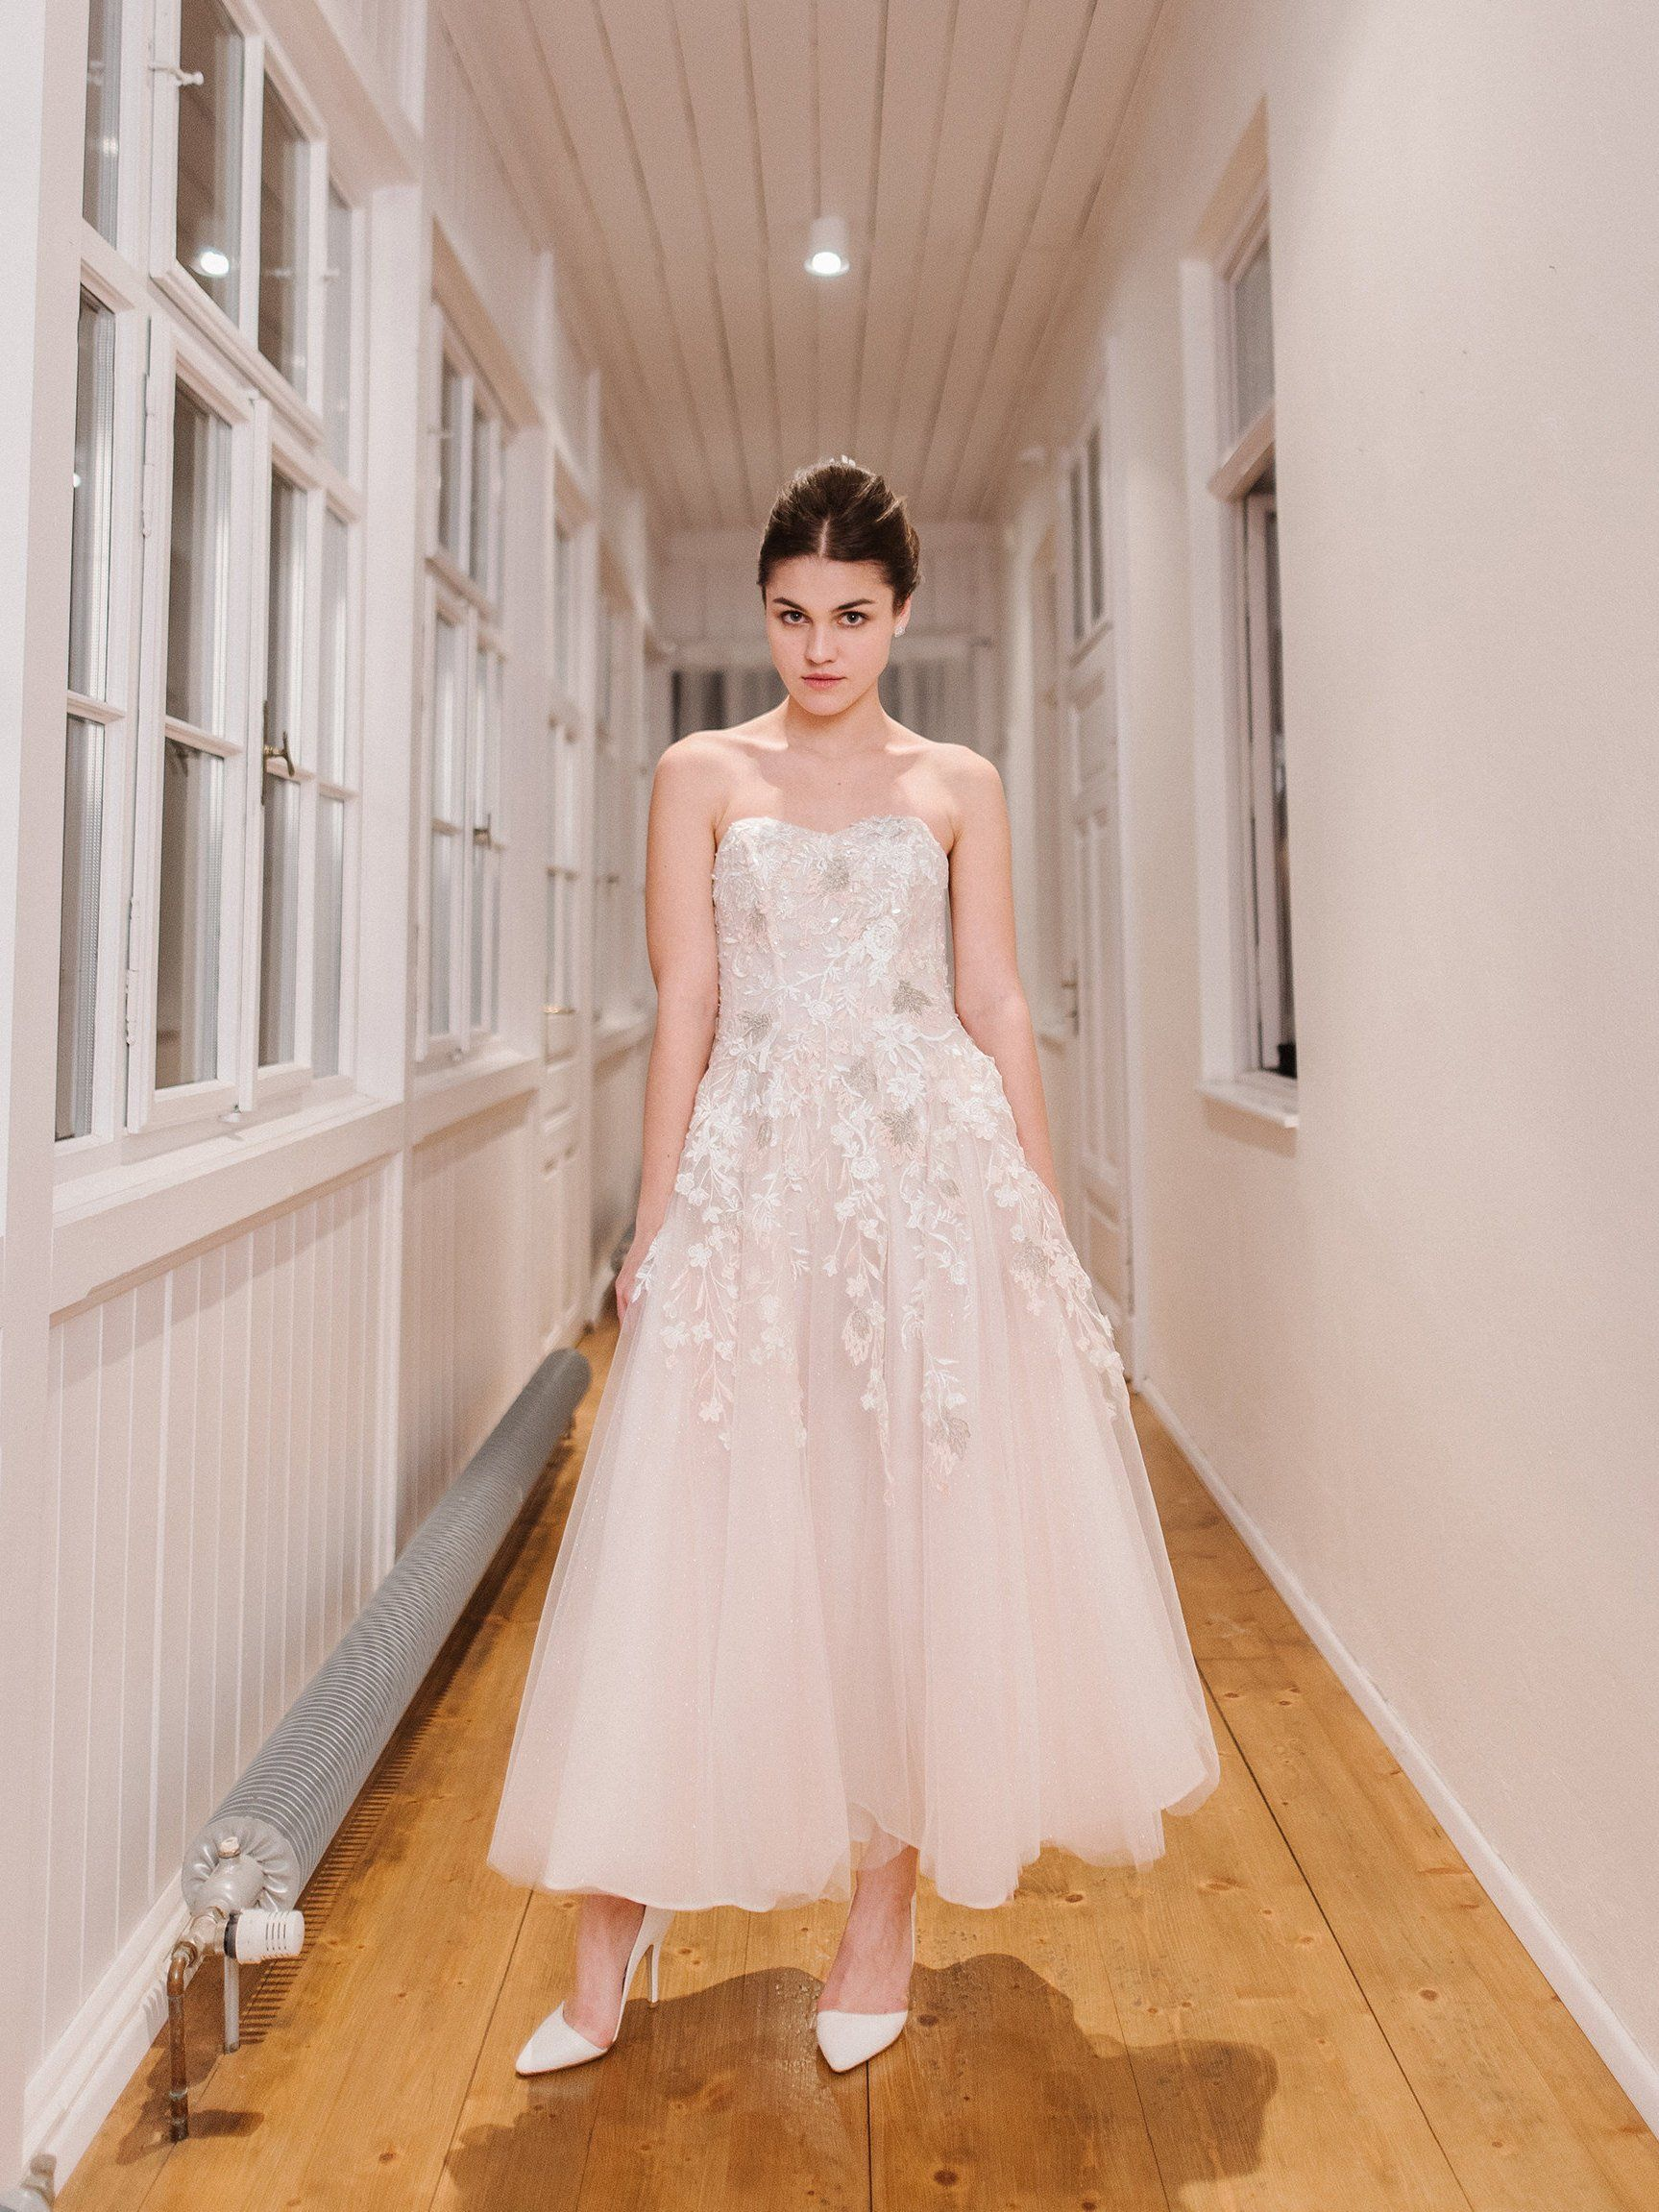 SAMPLE SALE!!! Nontraditional wedding dress with